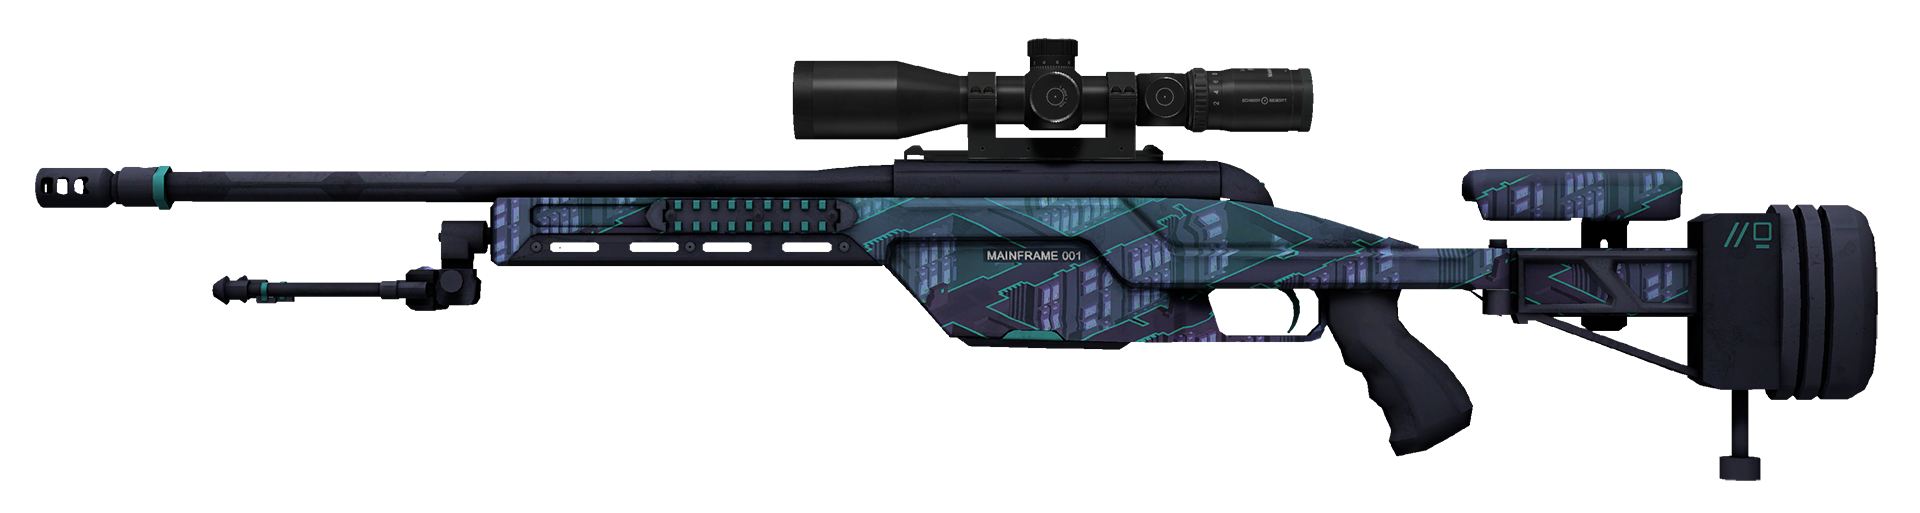 SSG 08 Mainframe 001 Large Rendering